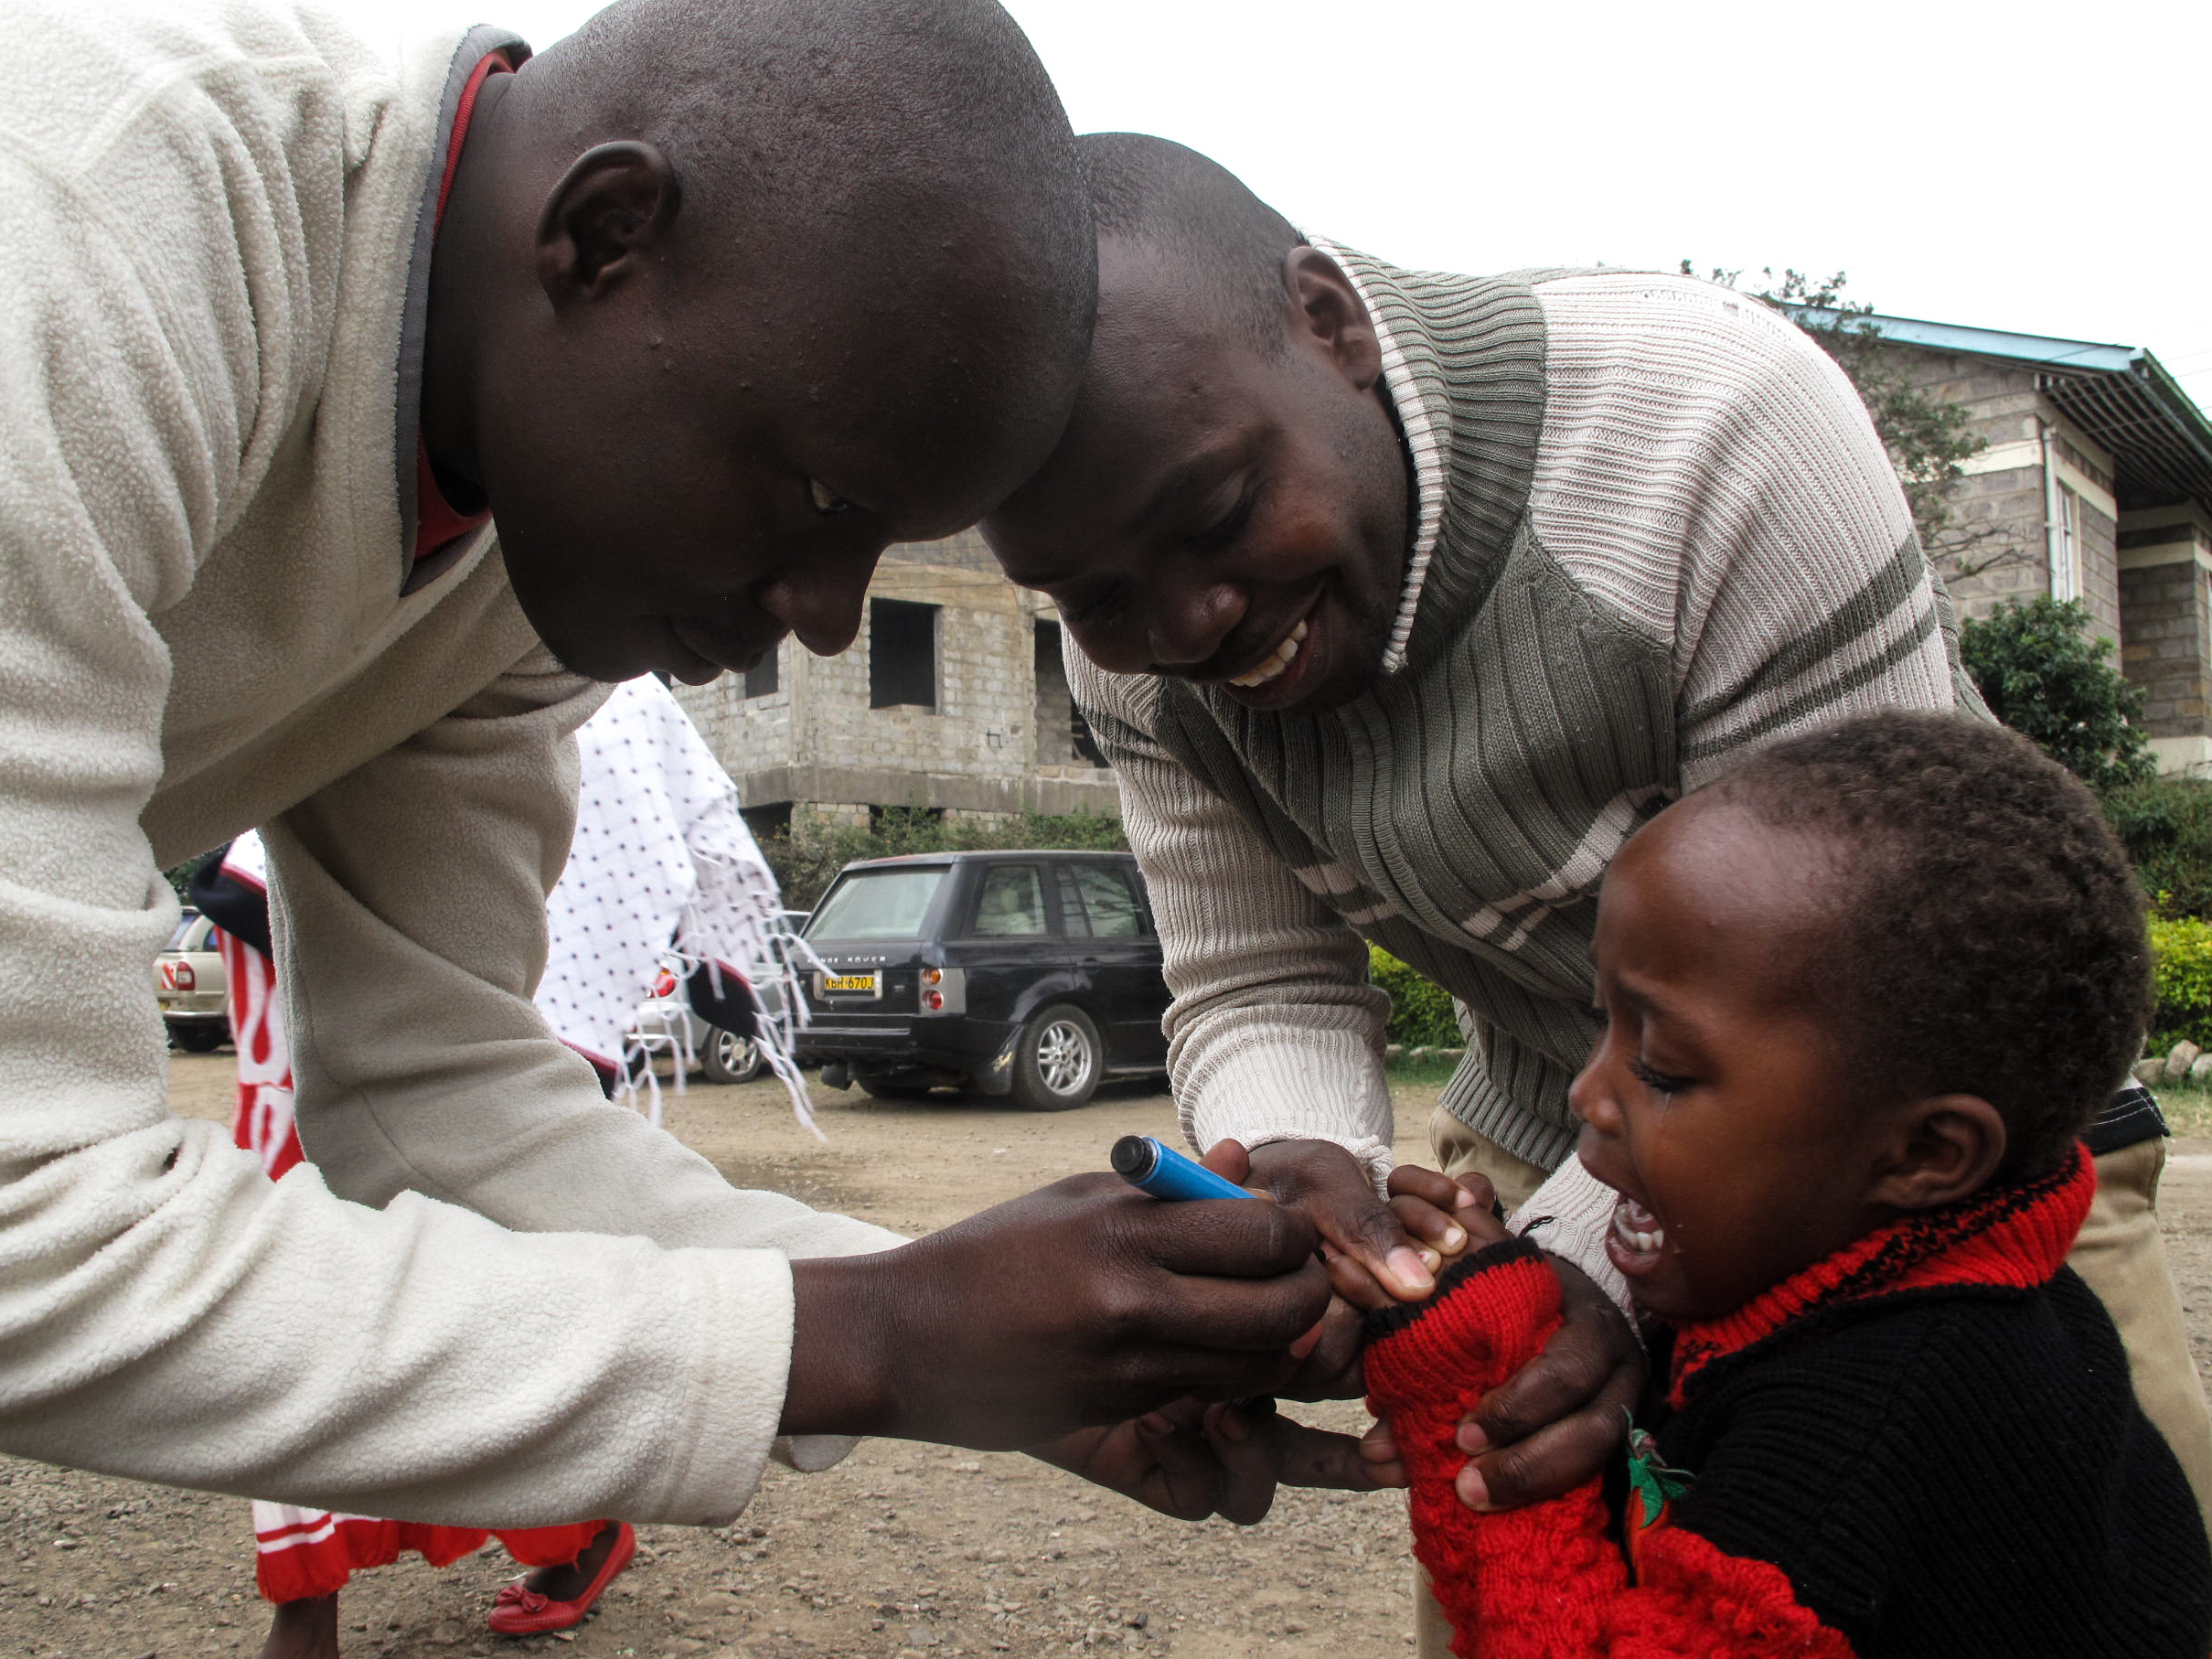 Catholic Bishops In Kenya Call For A Boycott Of Polio Vaccines